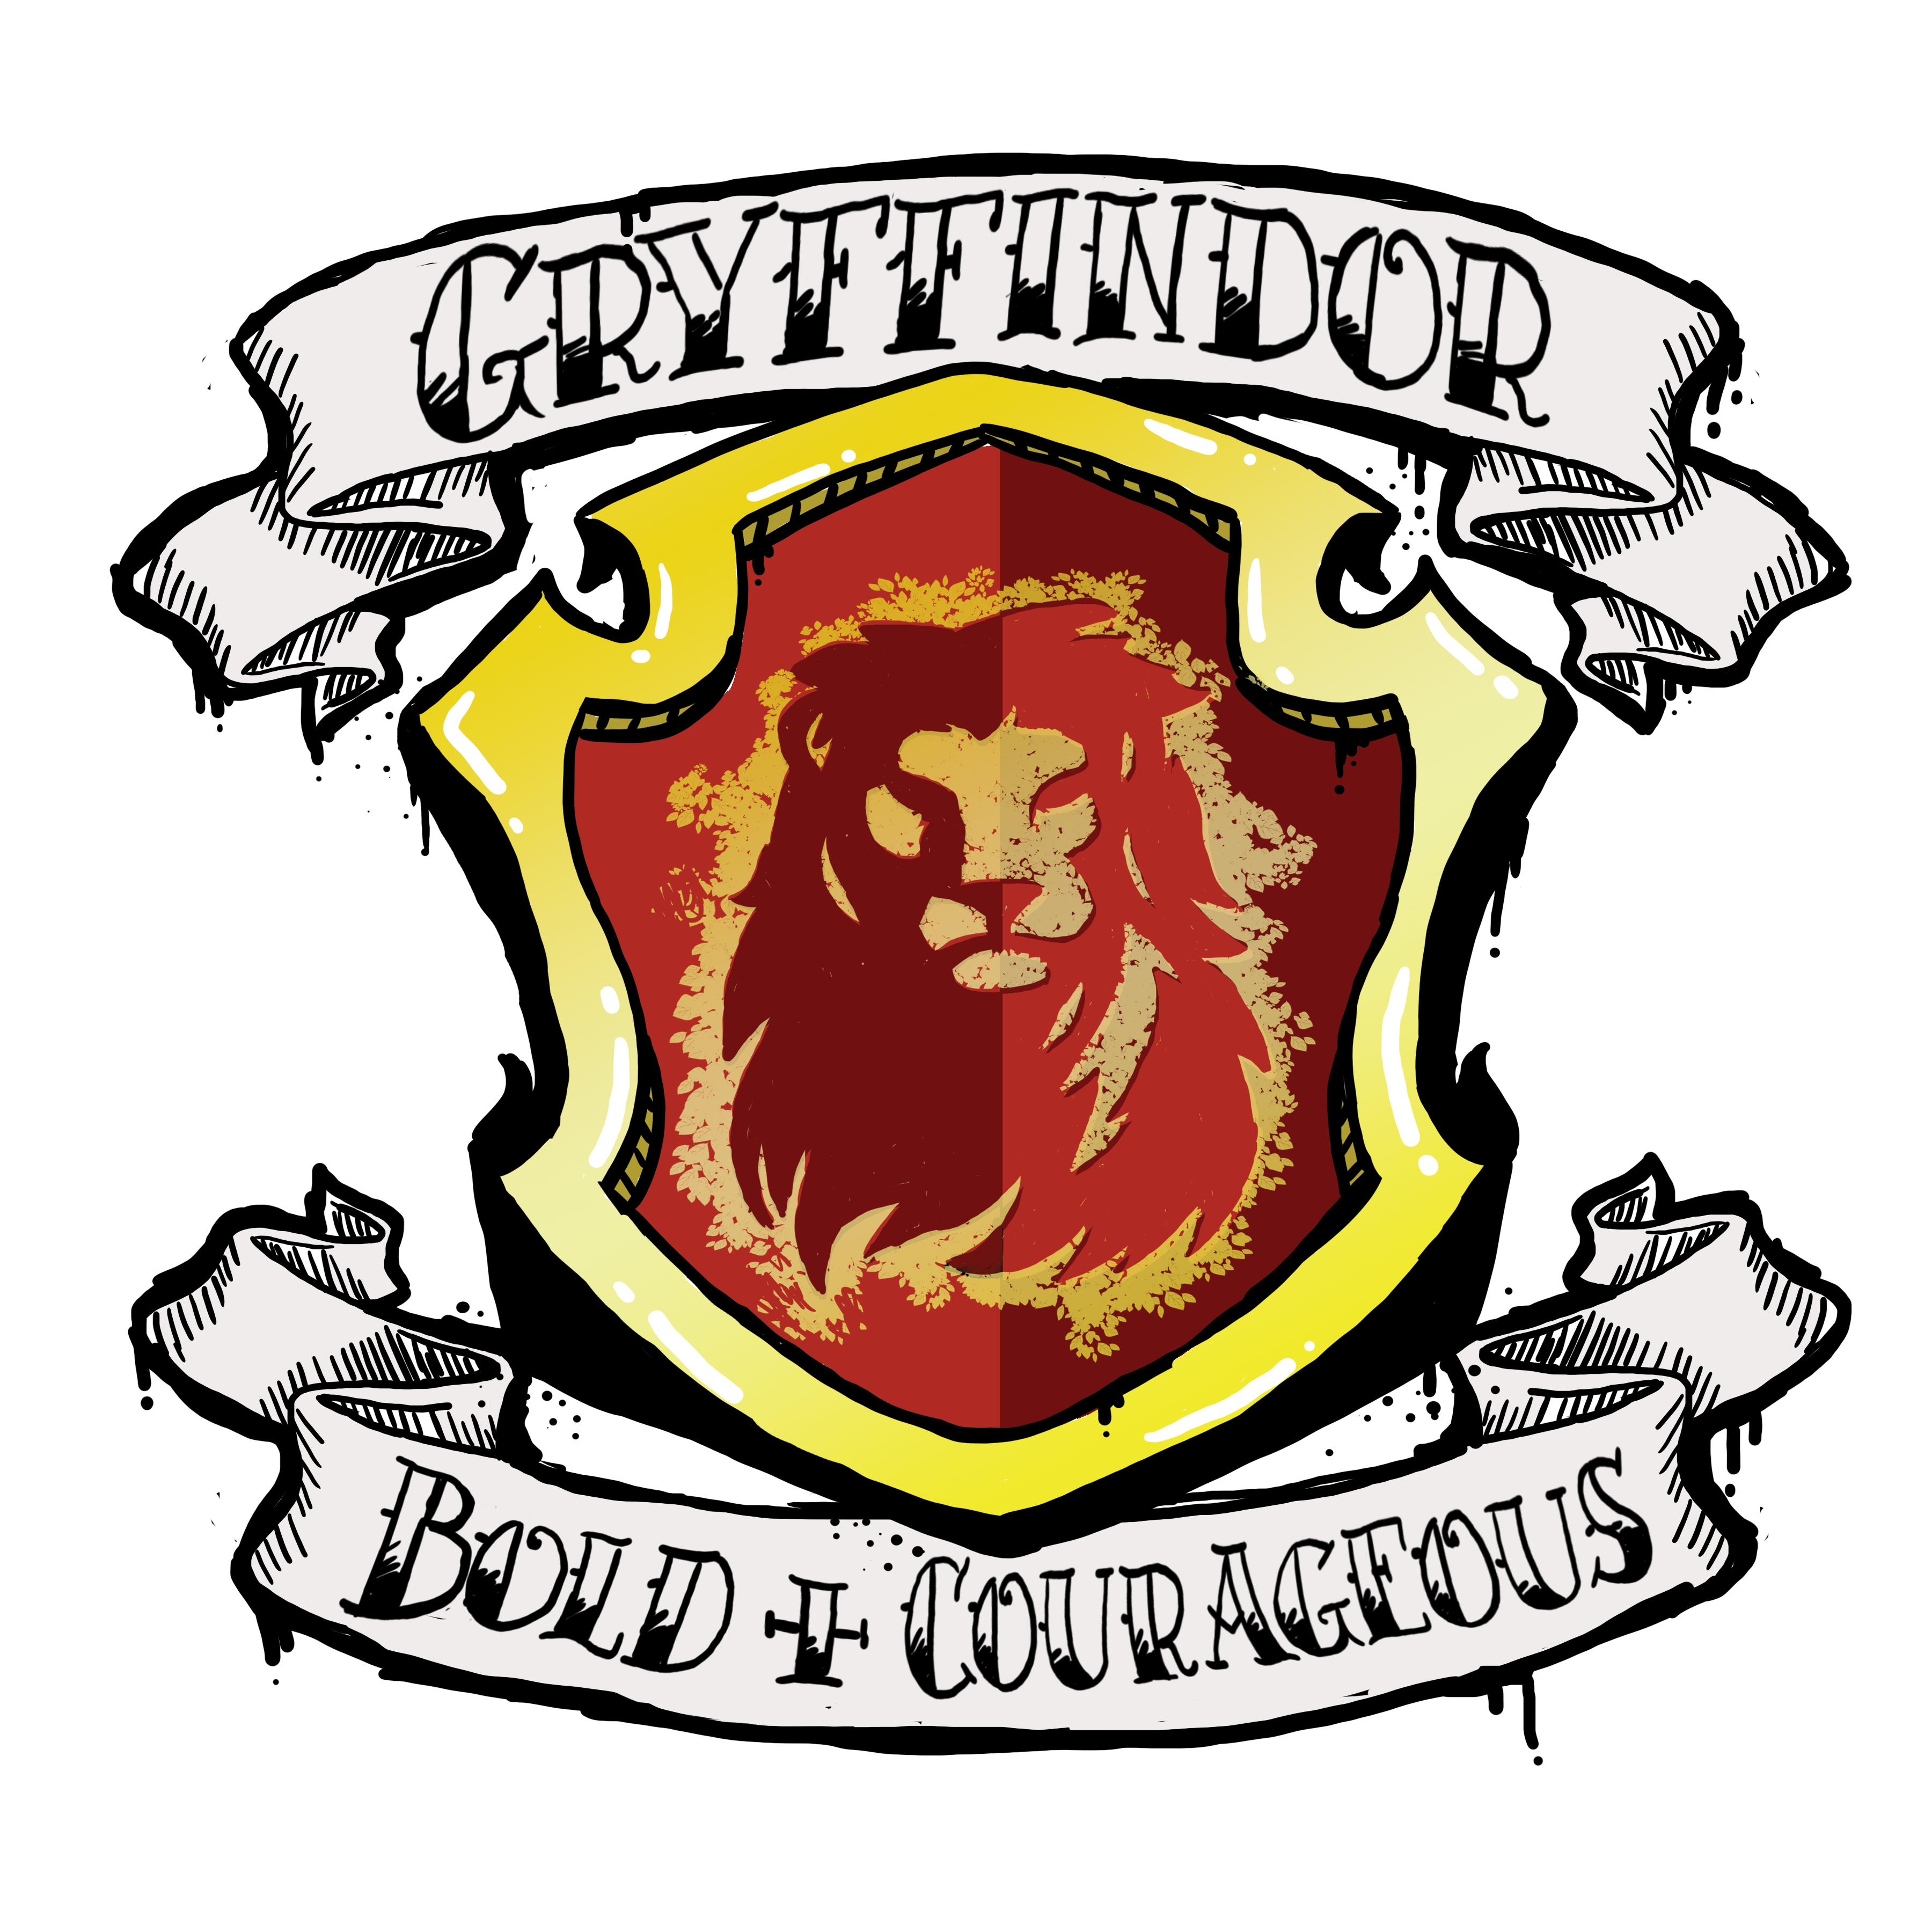 Pin by Judy Lingerfelt on Harry Potter Hogwarts crest